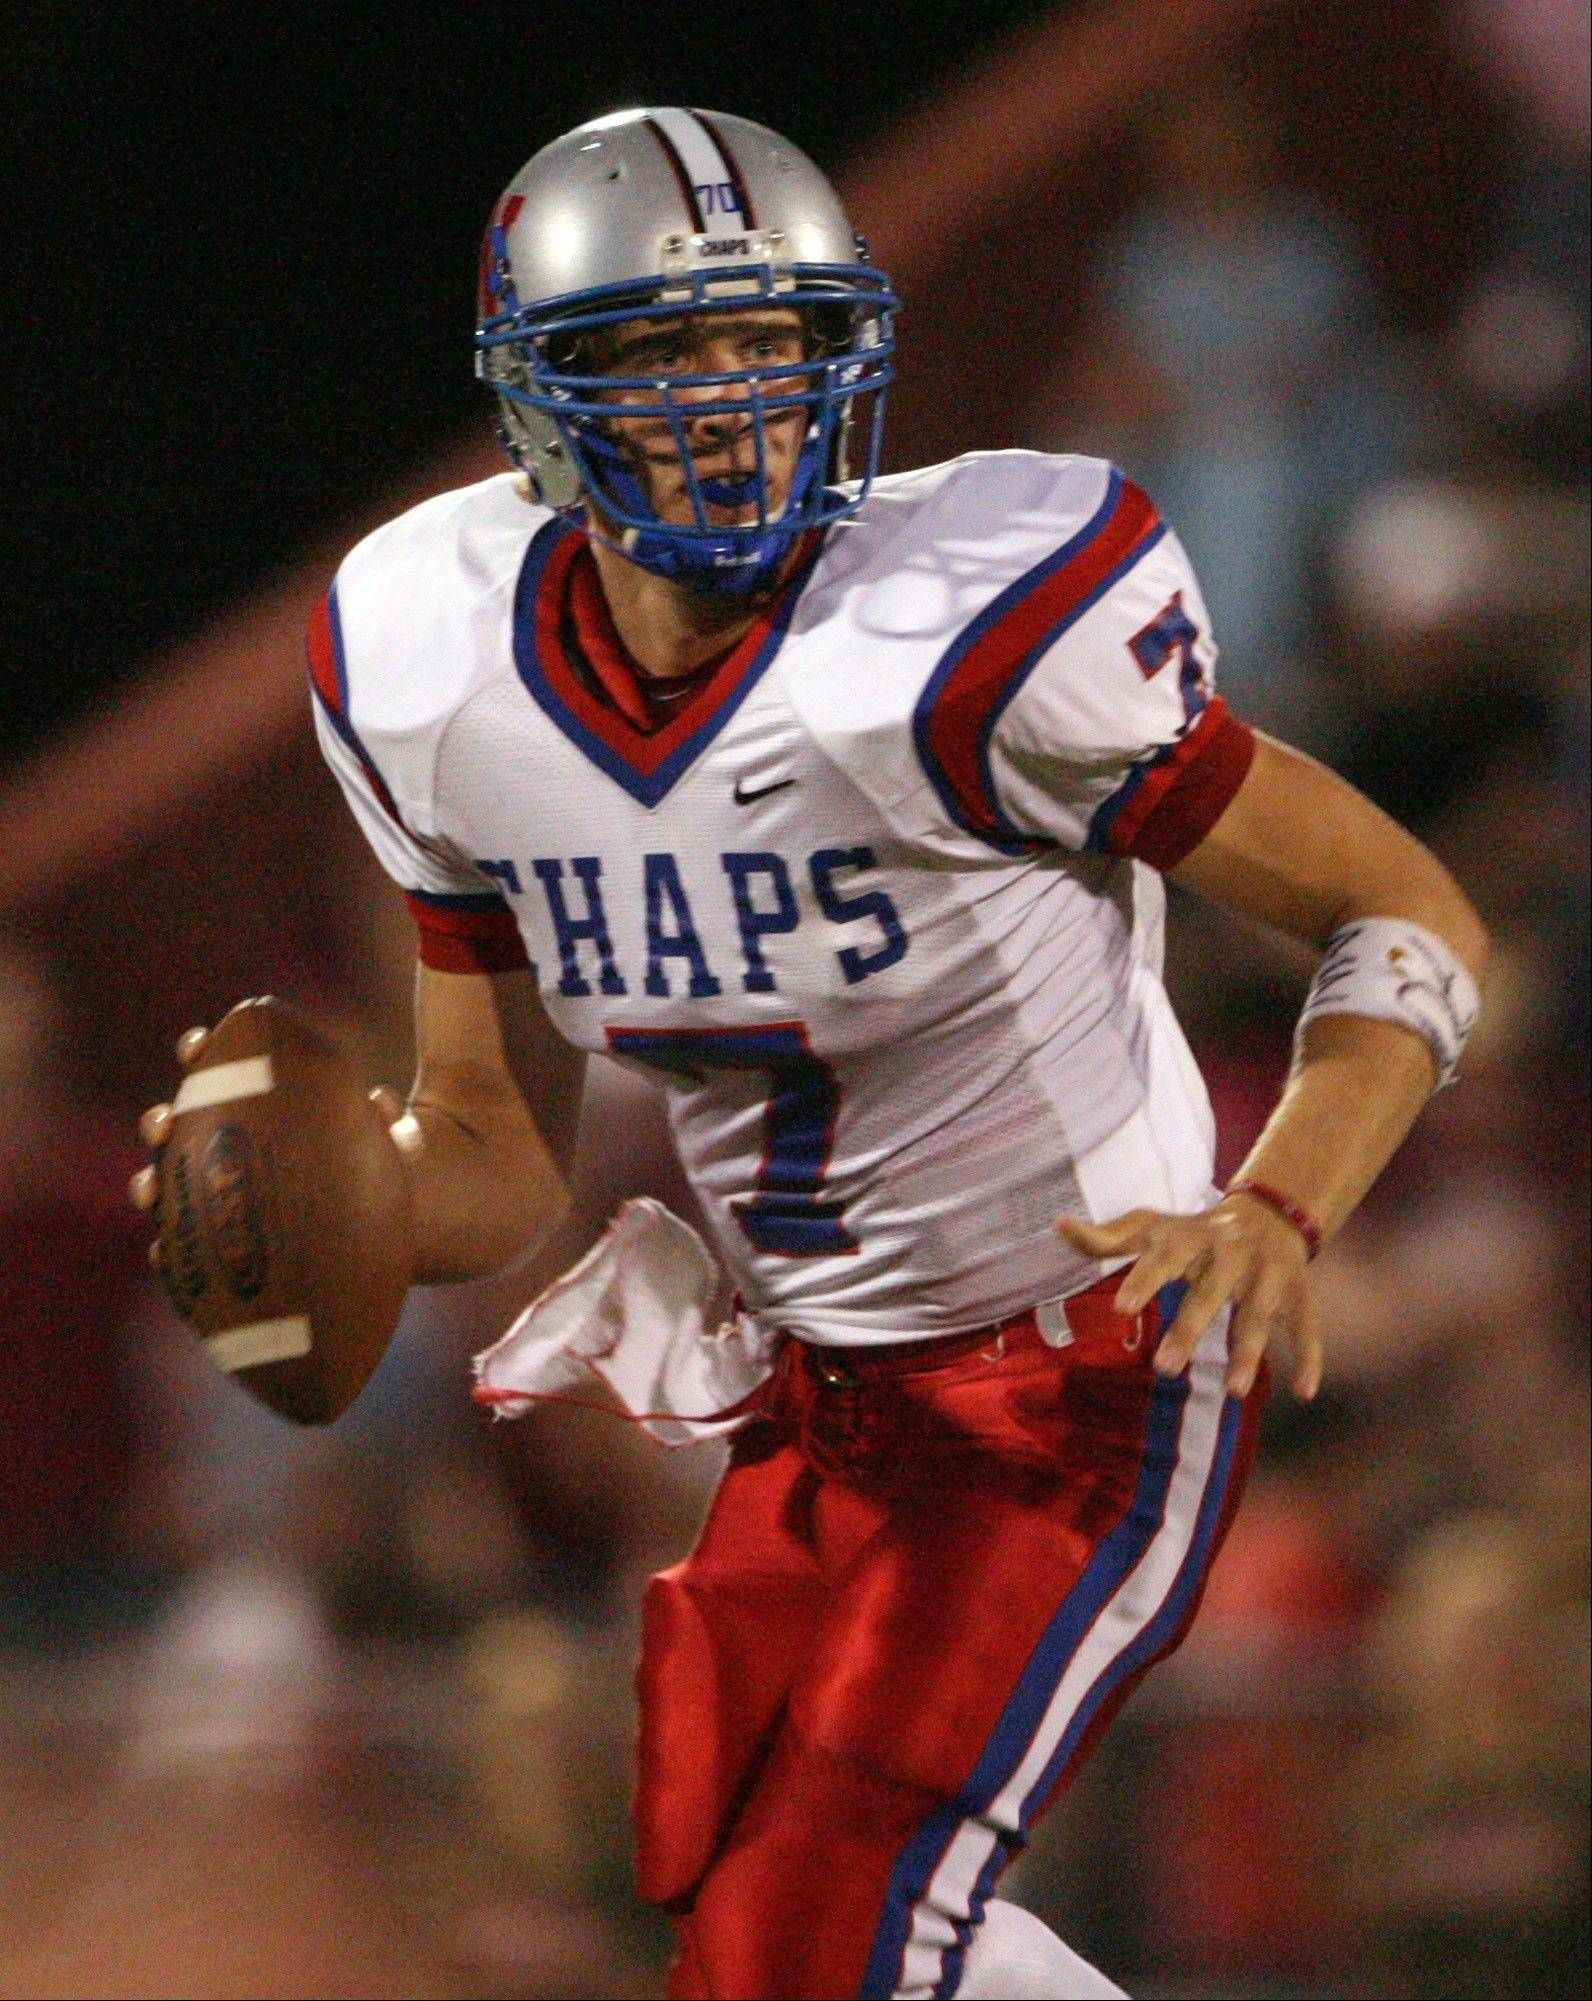 This Sept. 29, 2006 photo shows Westlake High School quarterback Nick Foles looking for a receiver against Austin High during a game in Austin, Texas. Ten years after Drew Brees led Westlake High School to victory in the Texas state championship game, Foles broke several of his passing records but lost in the title game. The two quarterbacks meet Saturday with far more at stake in an NFC wild-card game between the Saints and the Eagles.